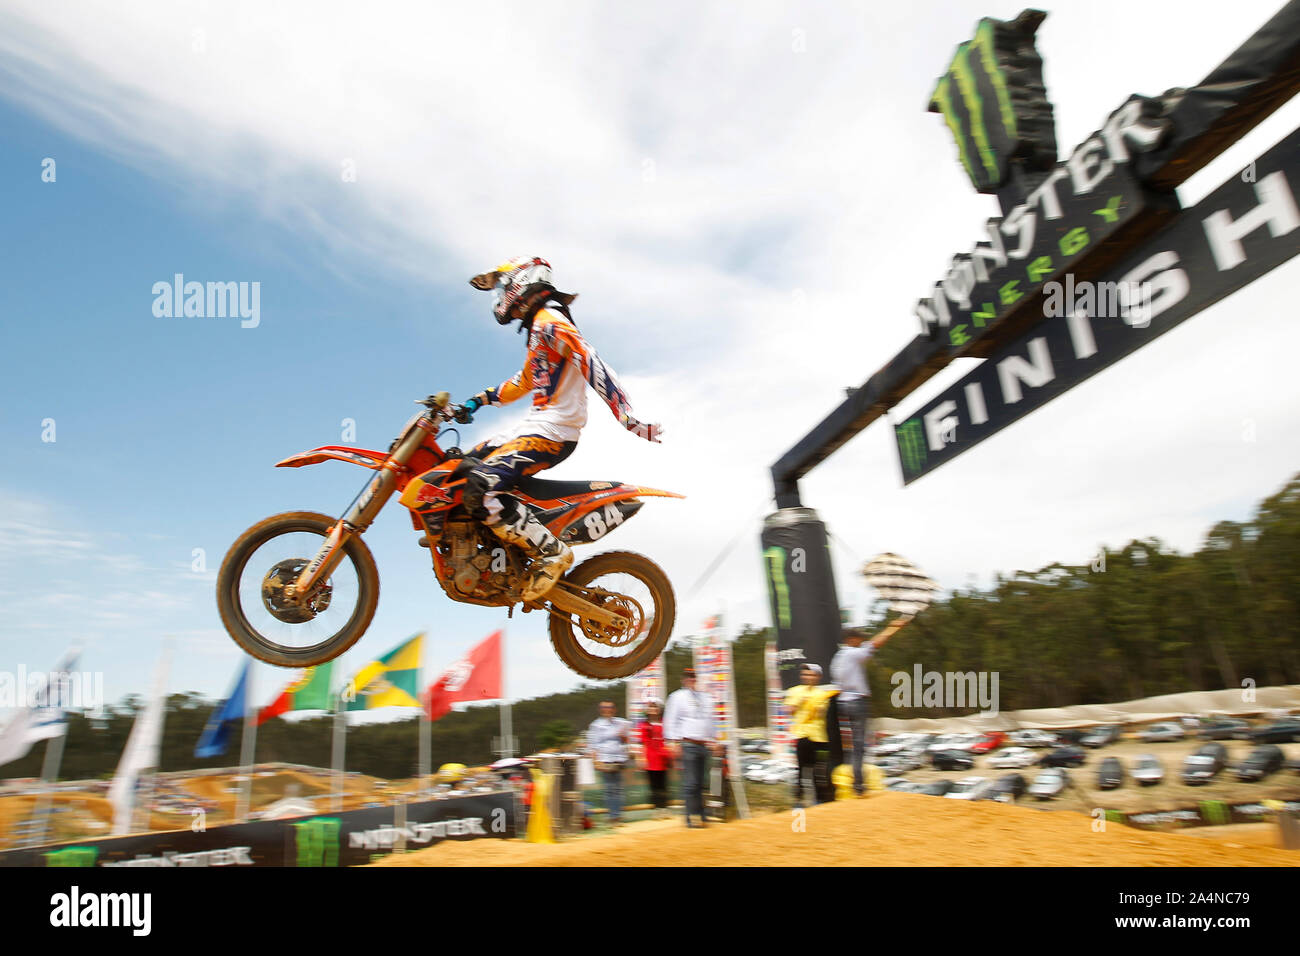 JEFFREY HERLINGS (NED) of Red Bull KTM Factory Racing, MX2 during GP of Portugal 2013 in MX1 and MX2, Casarão International Crossodromo, Águeda in Por Stock Photo